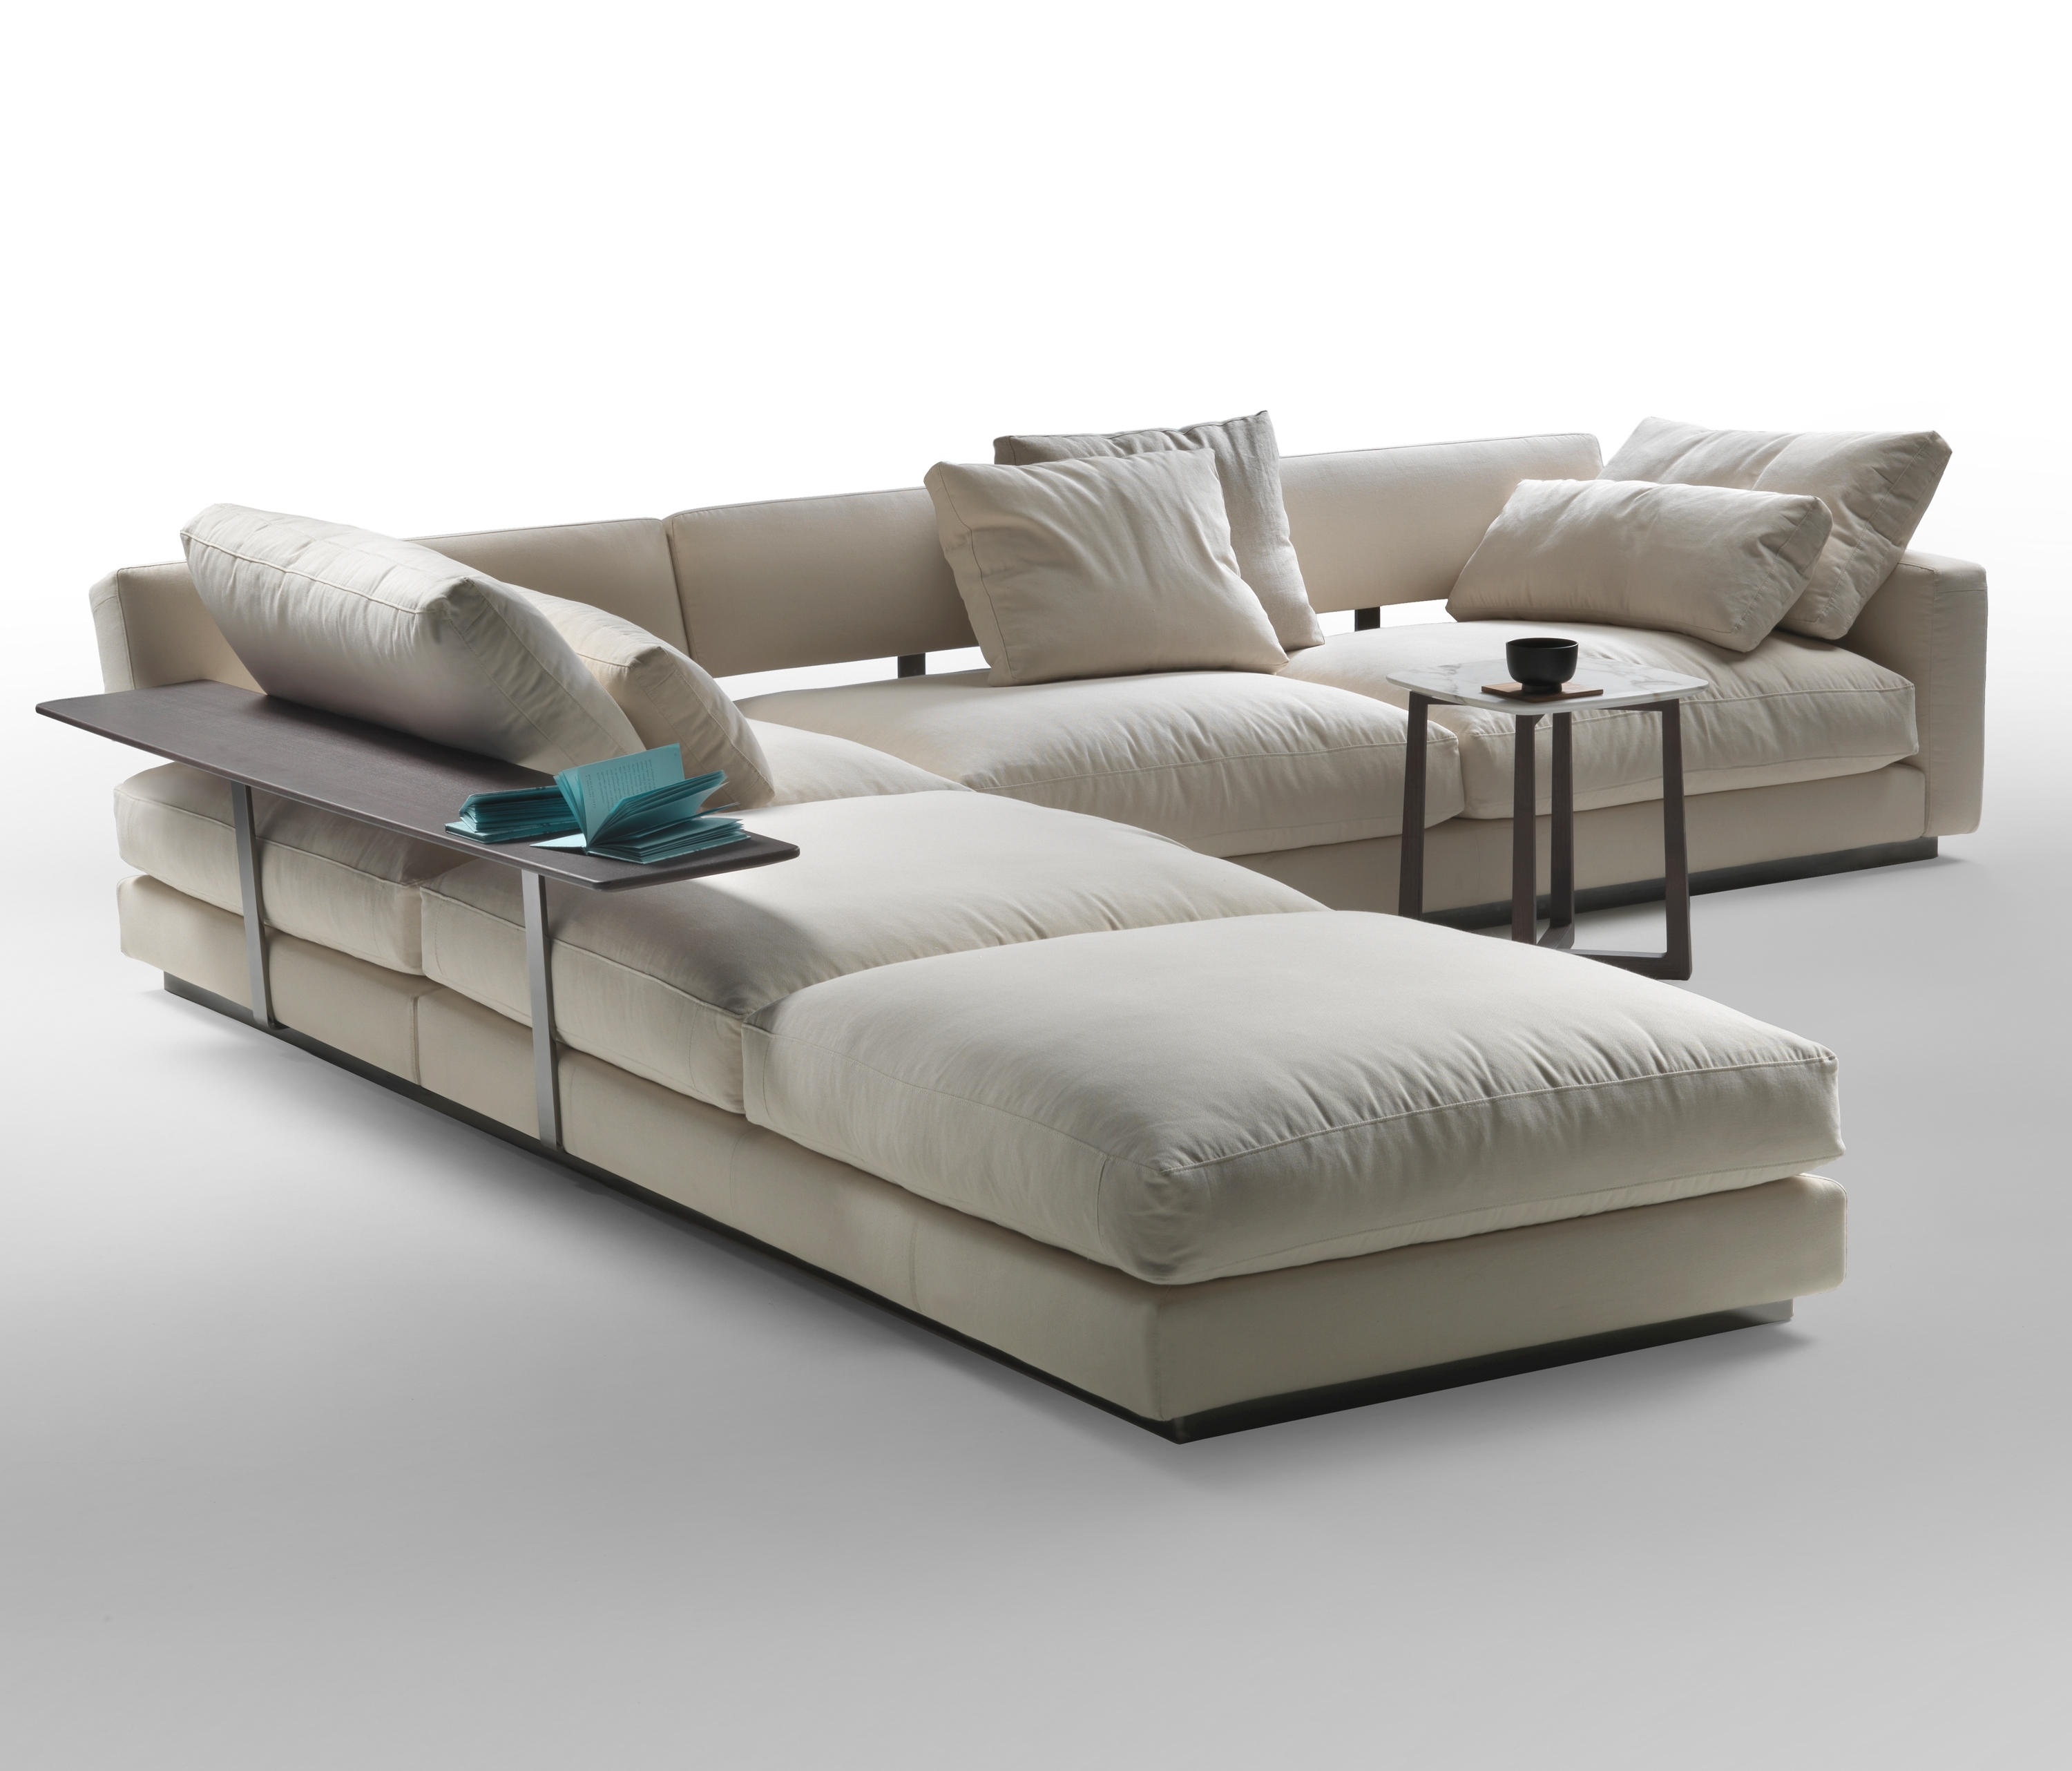 Newest Pleasure Sectional Sofa – Modular Seating Systems From Flexform Throughout St Louis Sectional Sofas (View 6 of 15)